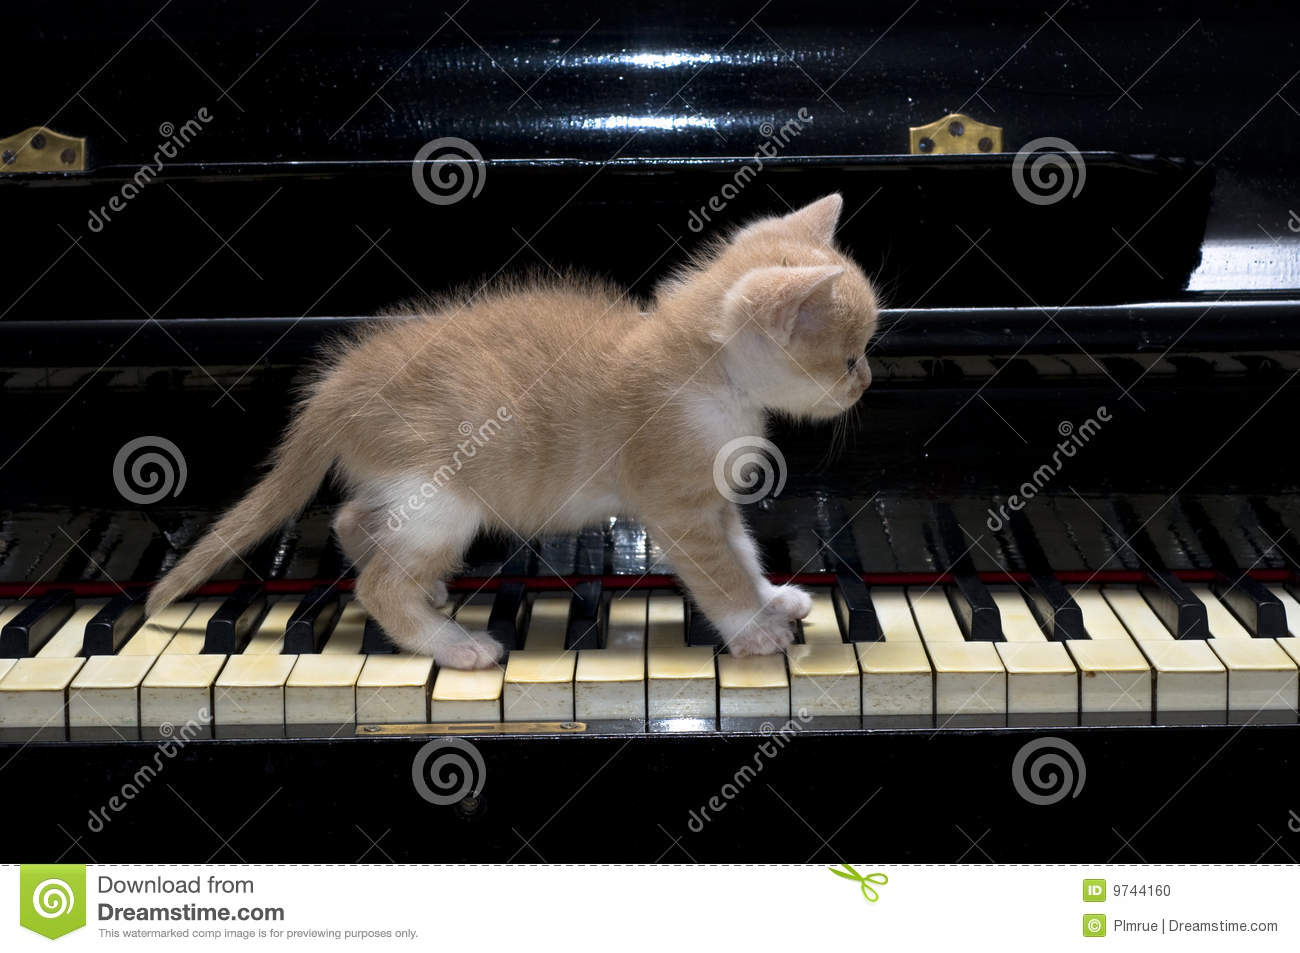 Animated Girl Wallpaper Free Download Piano Cat Stock Photo Image 9744160